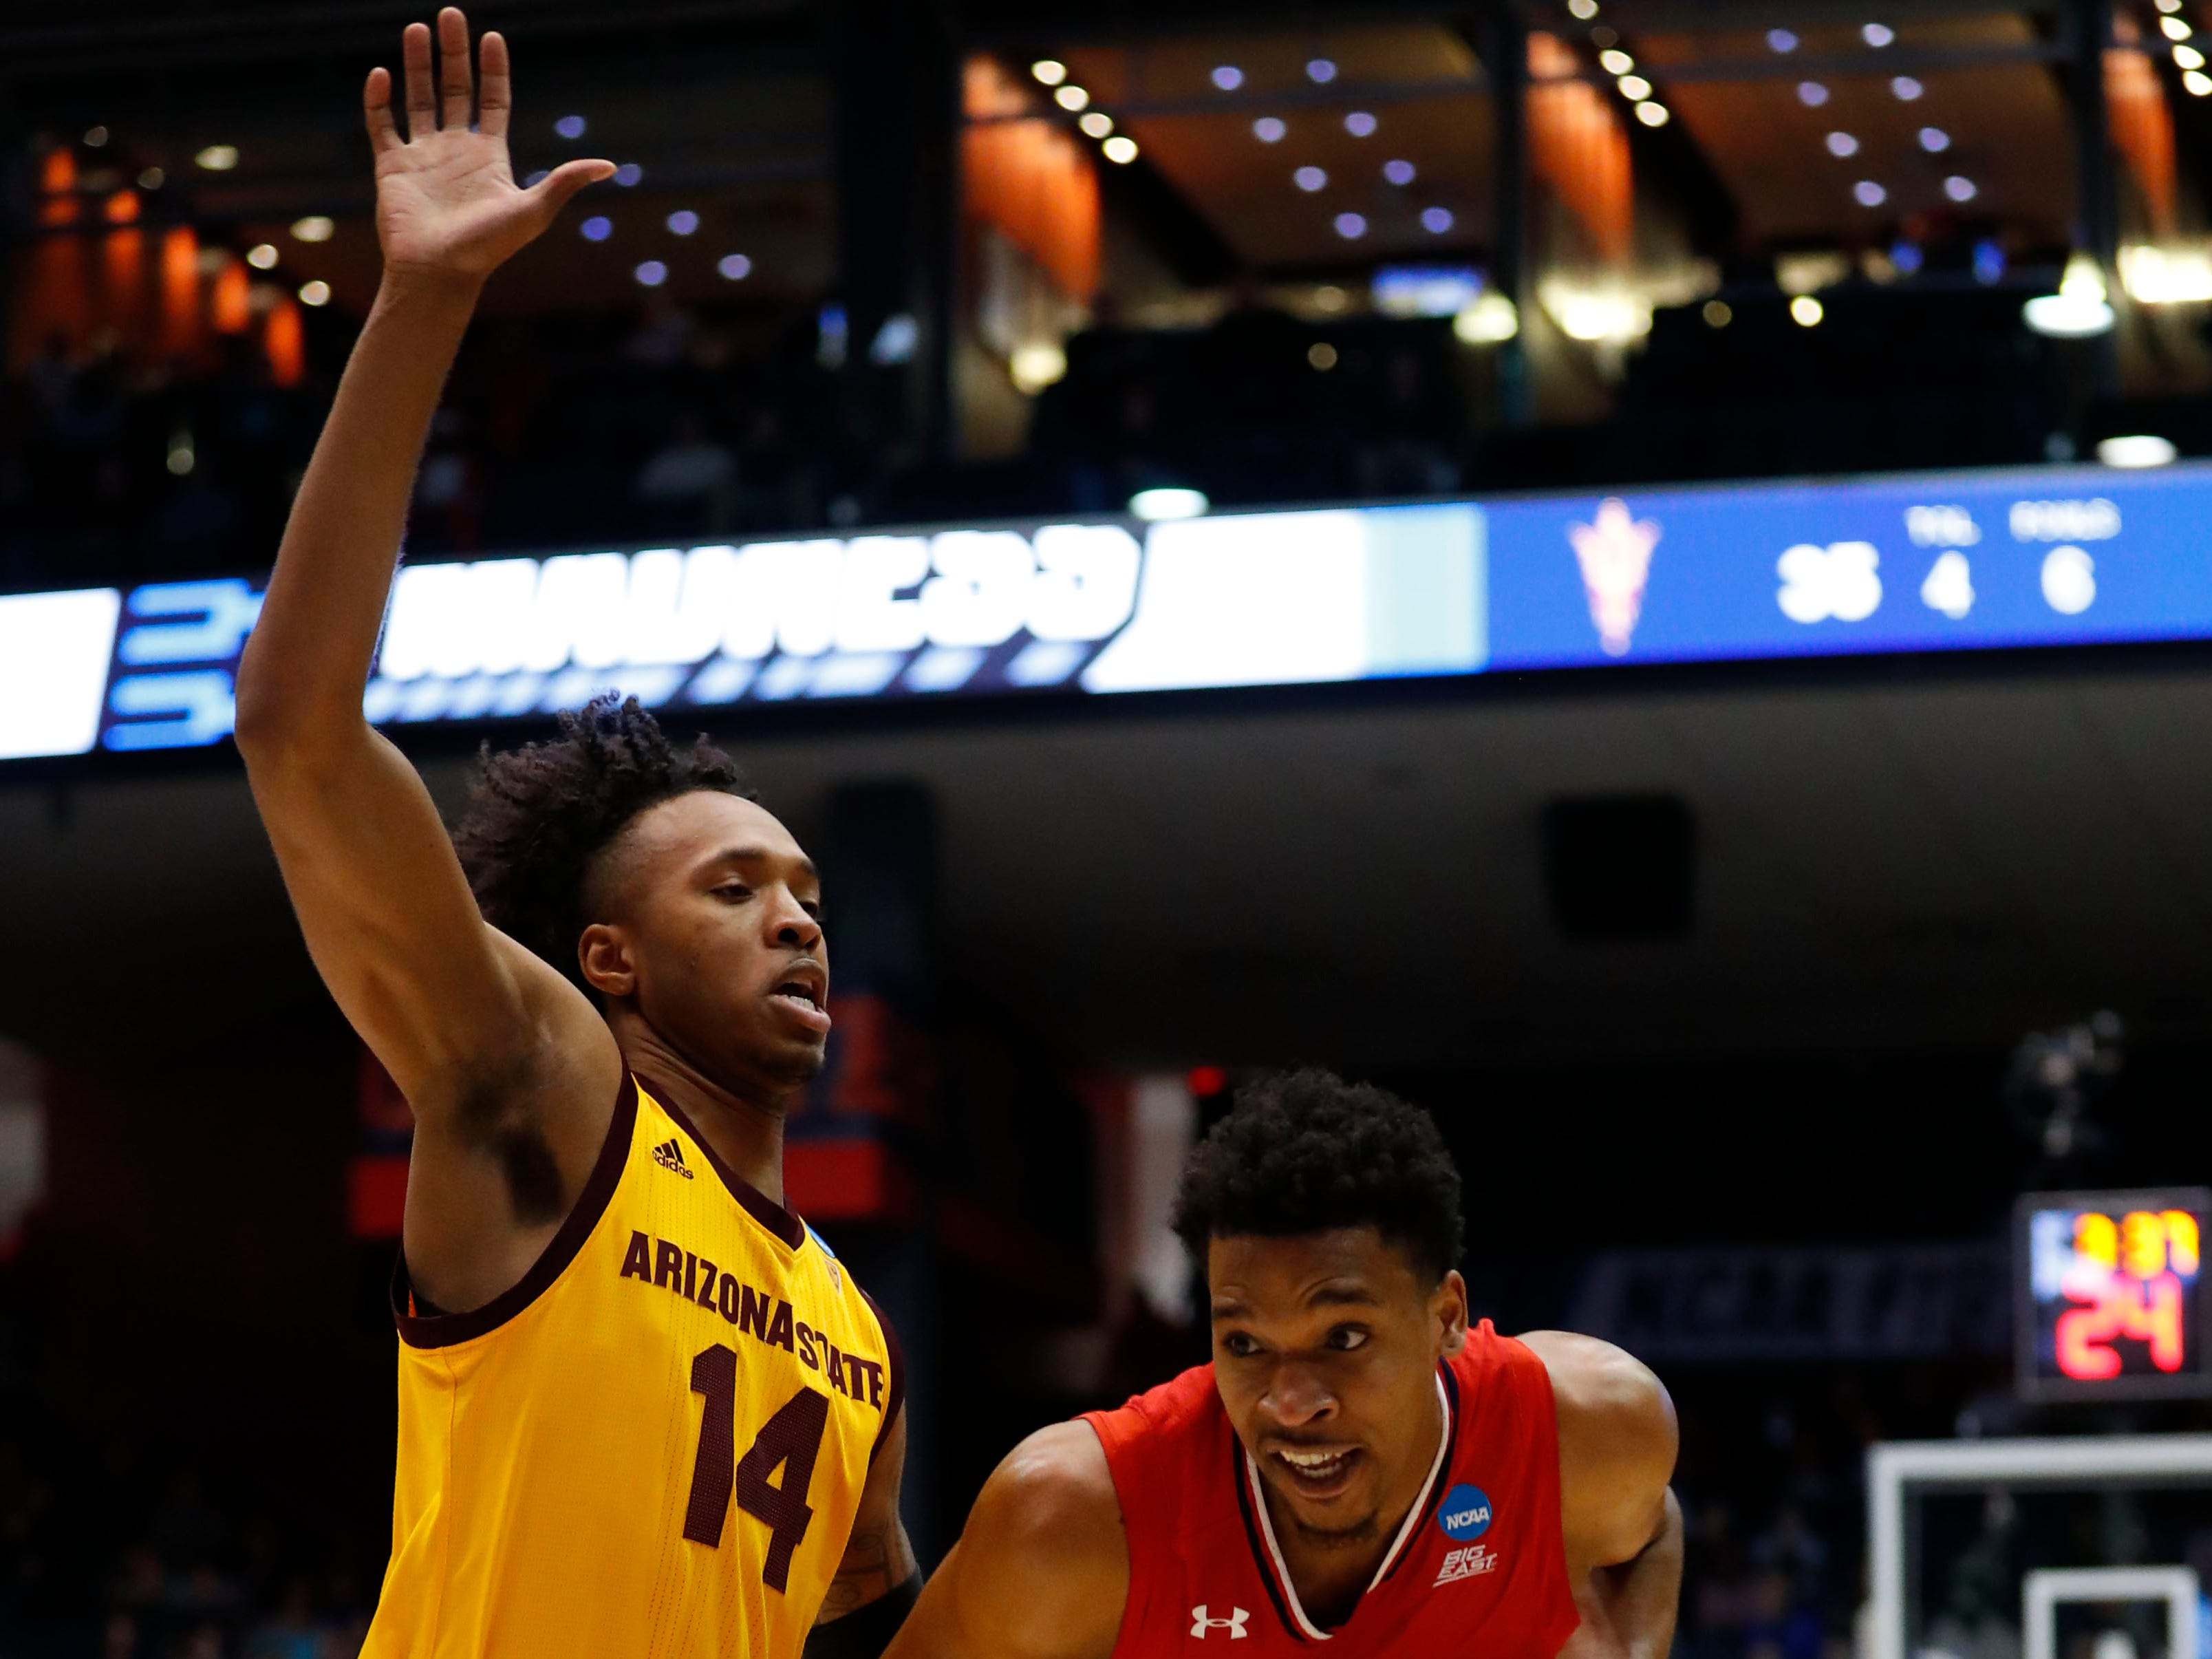 Mar 20, 2019; Dayton, OH, USA; St. John's Red Storm guard Justin Simon (5) moves down the court defended by Arizona State Sun Devils forward Kimani Lawrence (14) in the first half in the First Four of the 2019 NCAA Tournament at Dayton Arena. Mandatory Credit: Rick Osentoski-USA TODAY Sports